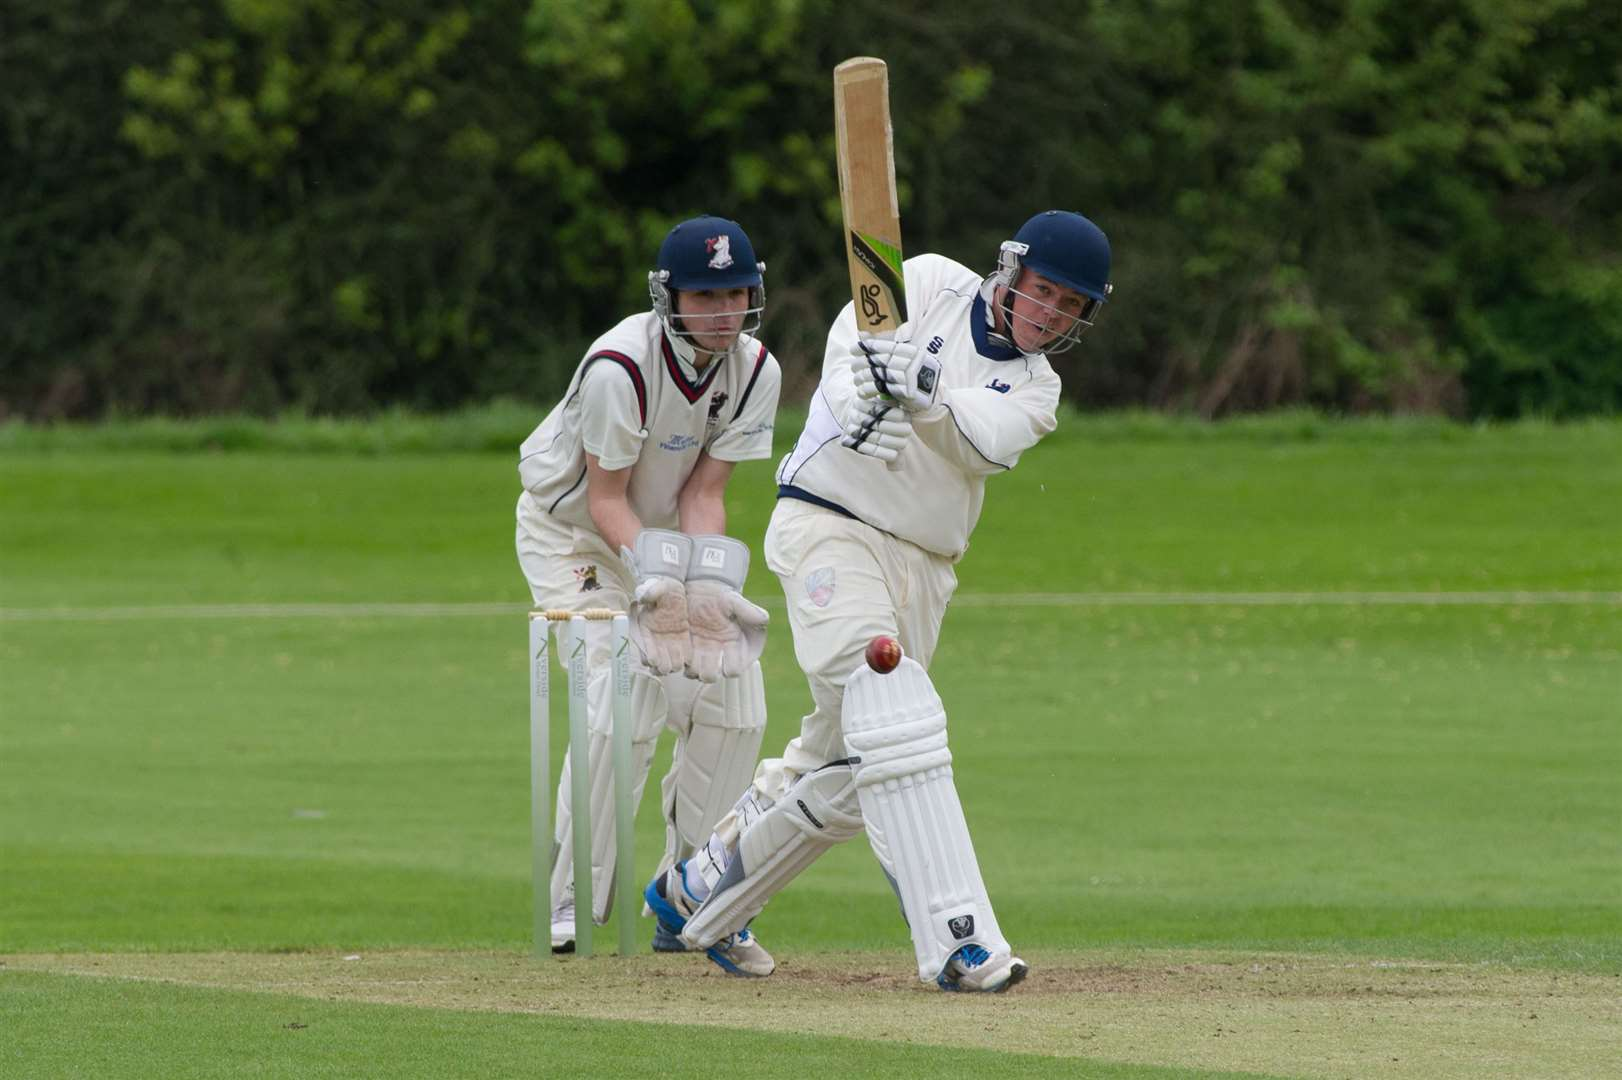 CRICKET - Mildenhall (Batting) v Haverhill (Fielding/Bowling)..Pictured: Jack Beaumont. (33484752)